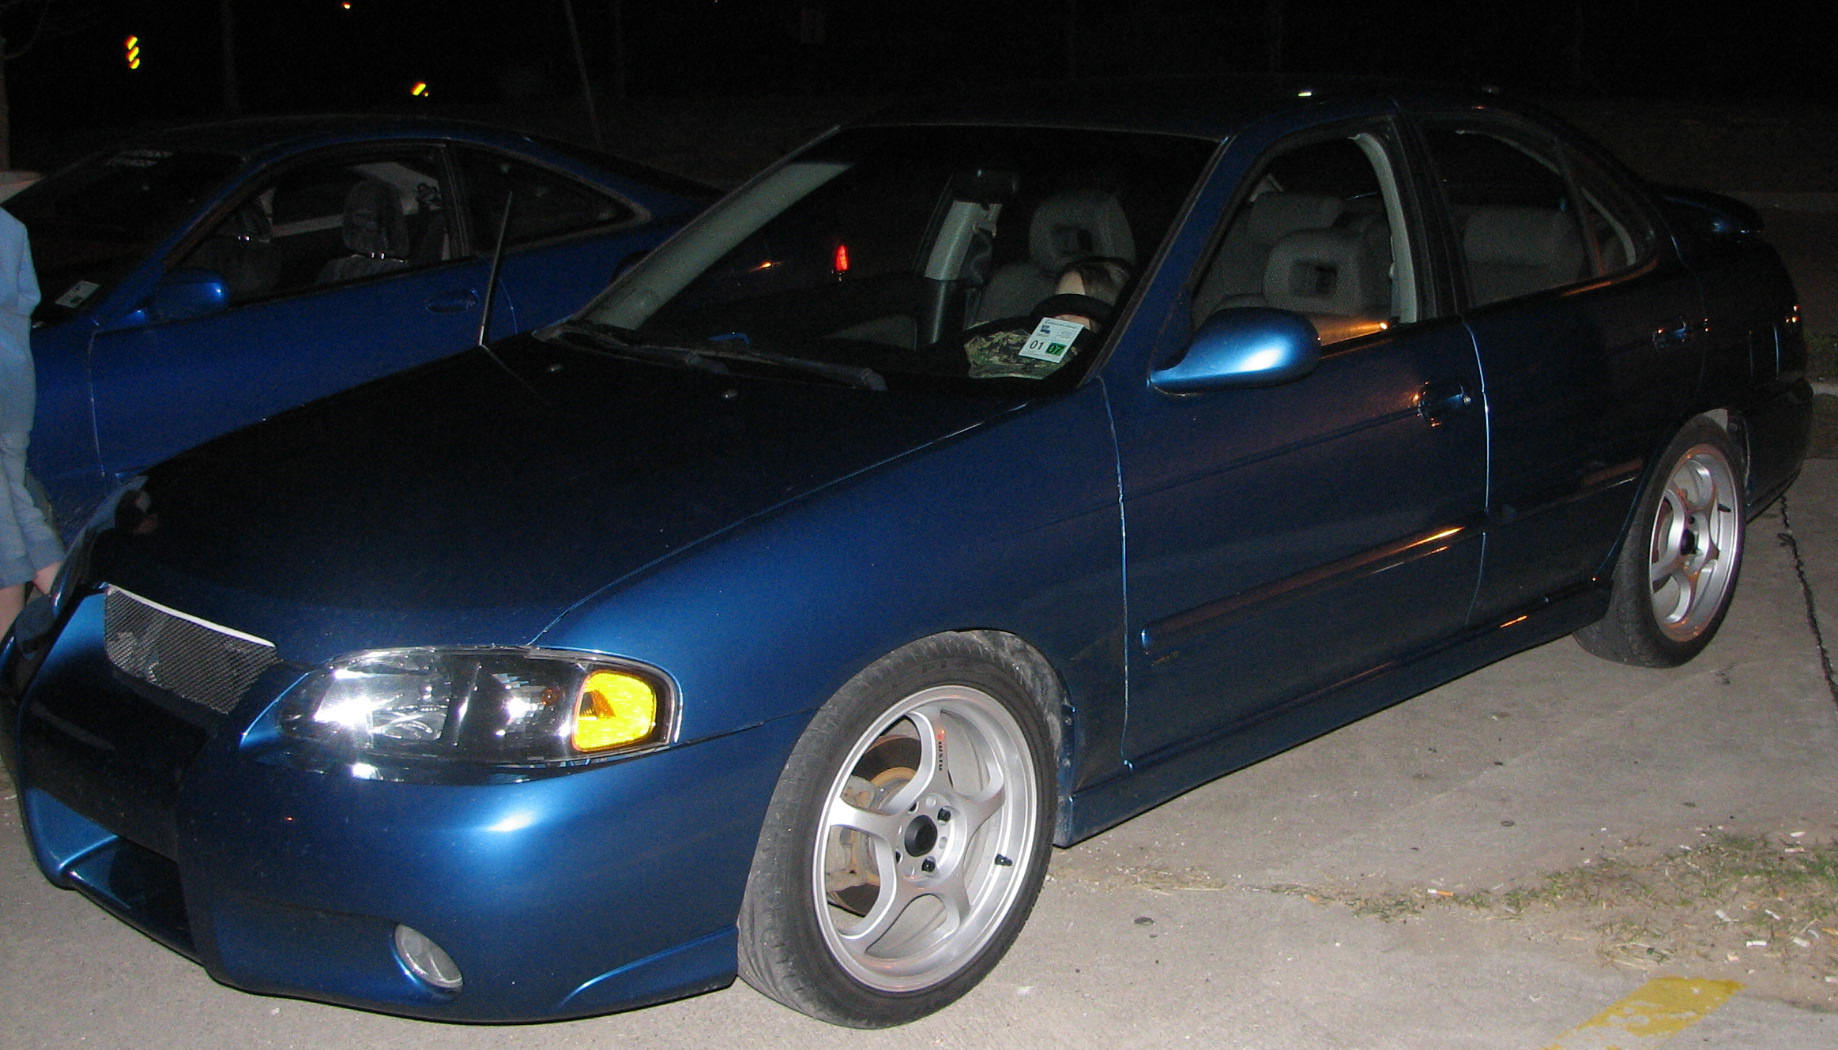 2003  Nissan Sentra SER SpecV Turbo picture, mods, upgrades